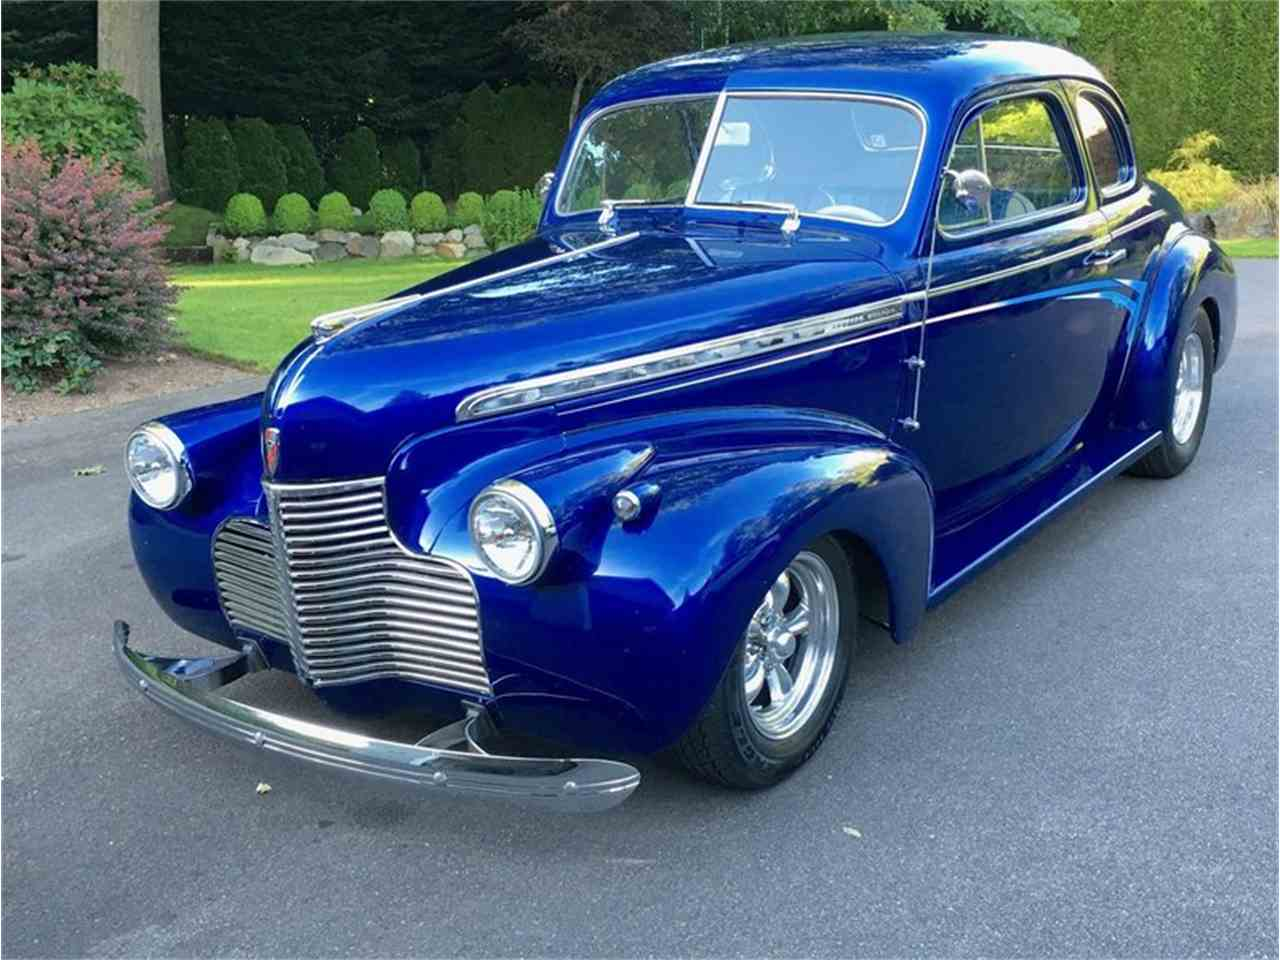 Large Picture of '40 Chevrolet Street Rod - $29,995.00 - M743